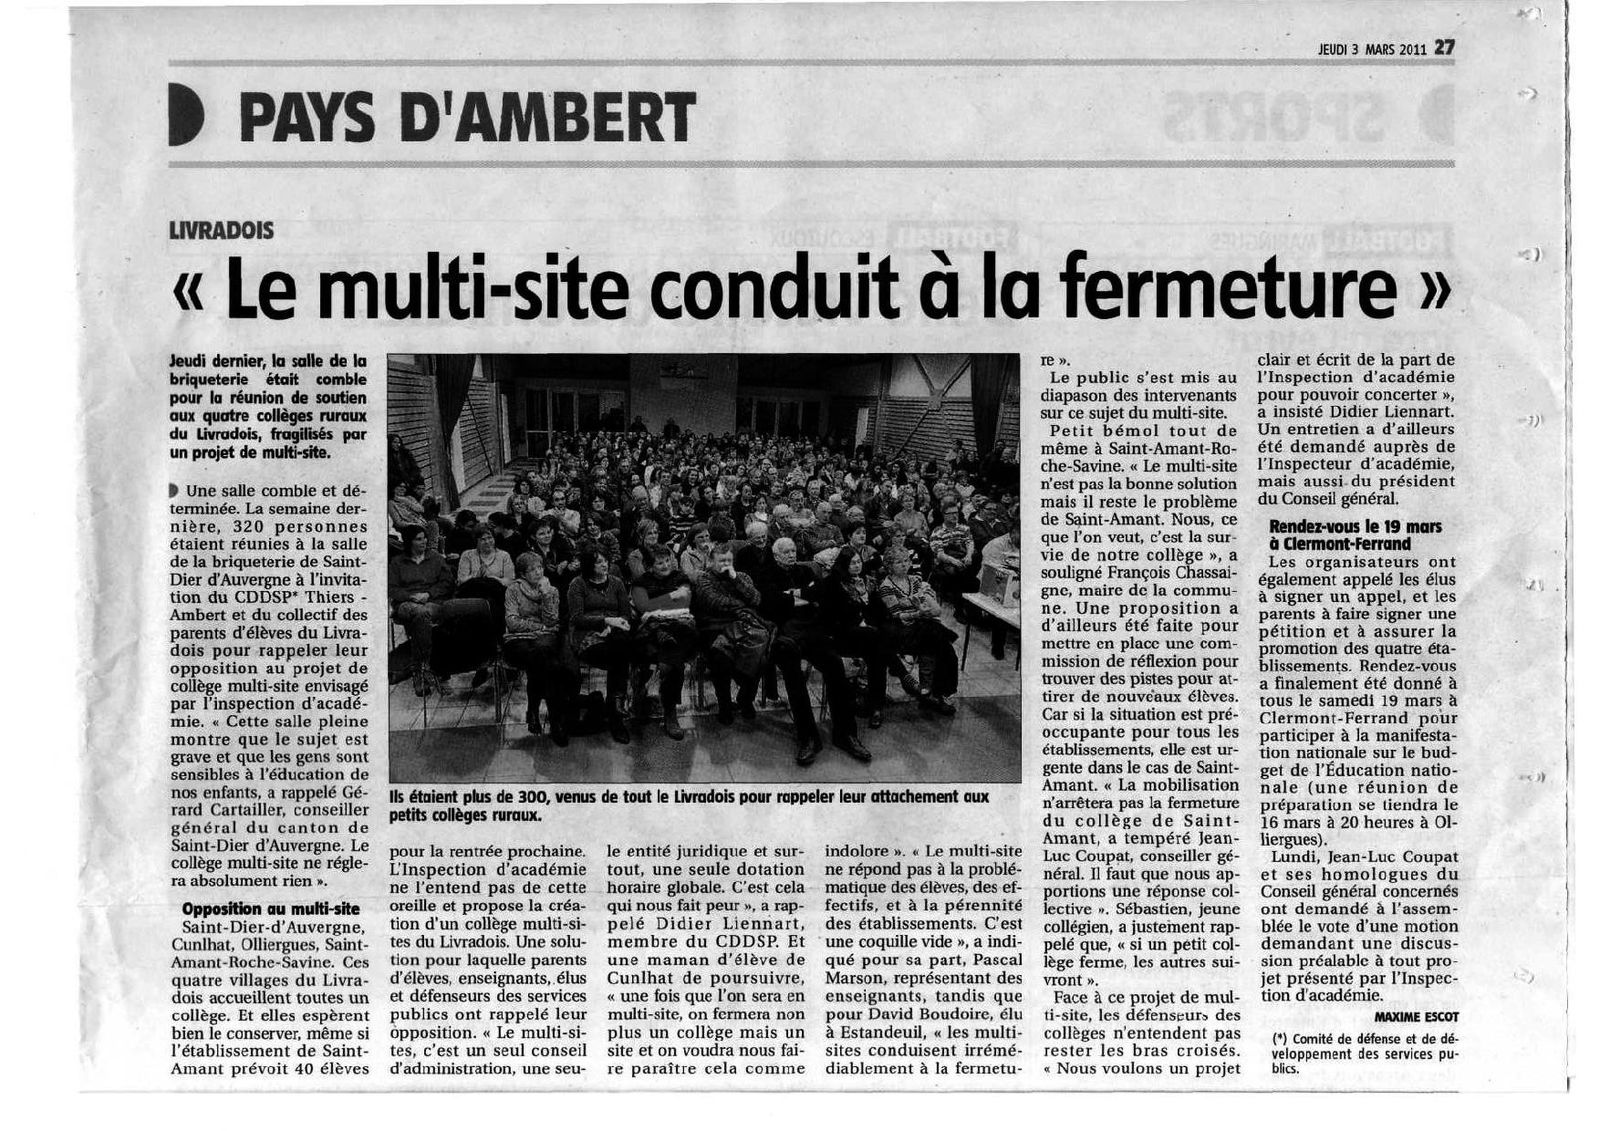 Article-dans-la-gazette.jpg